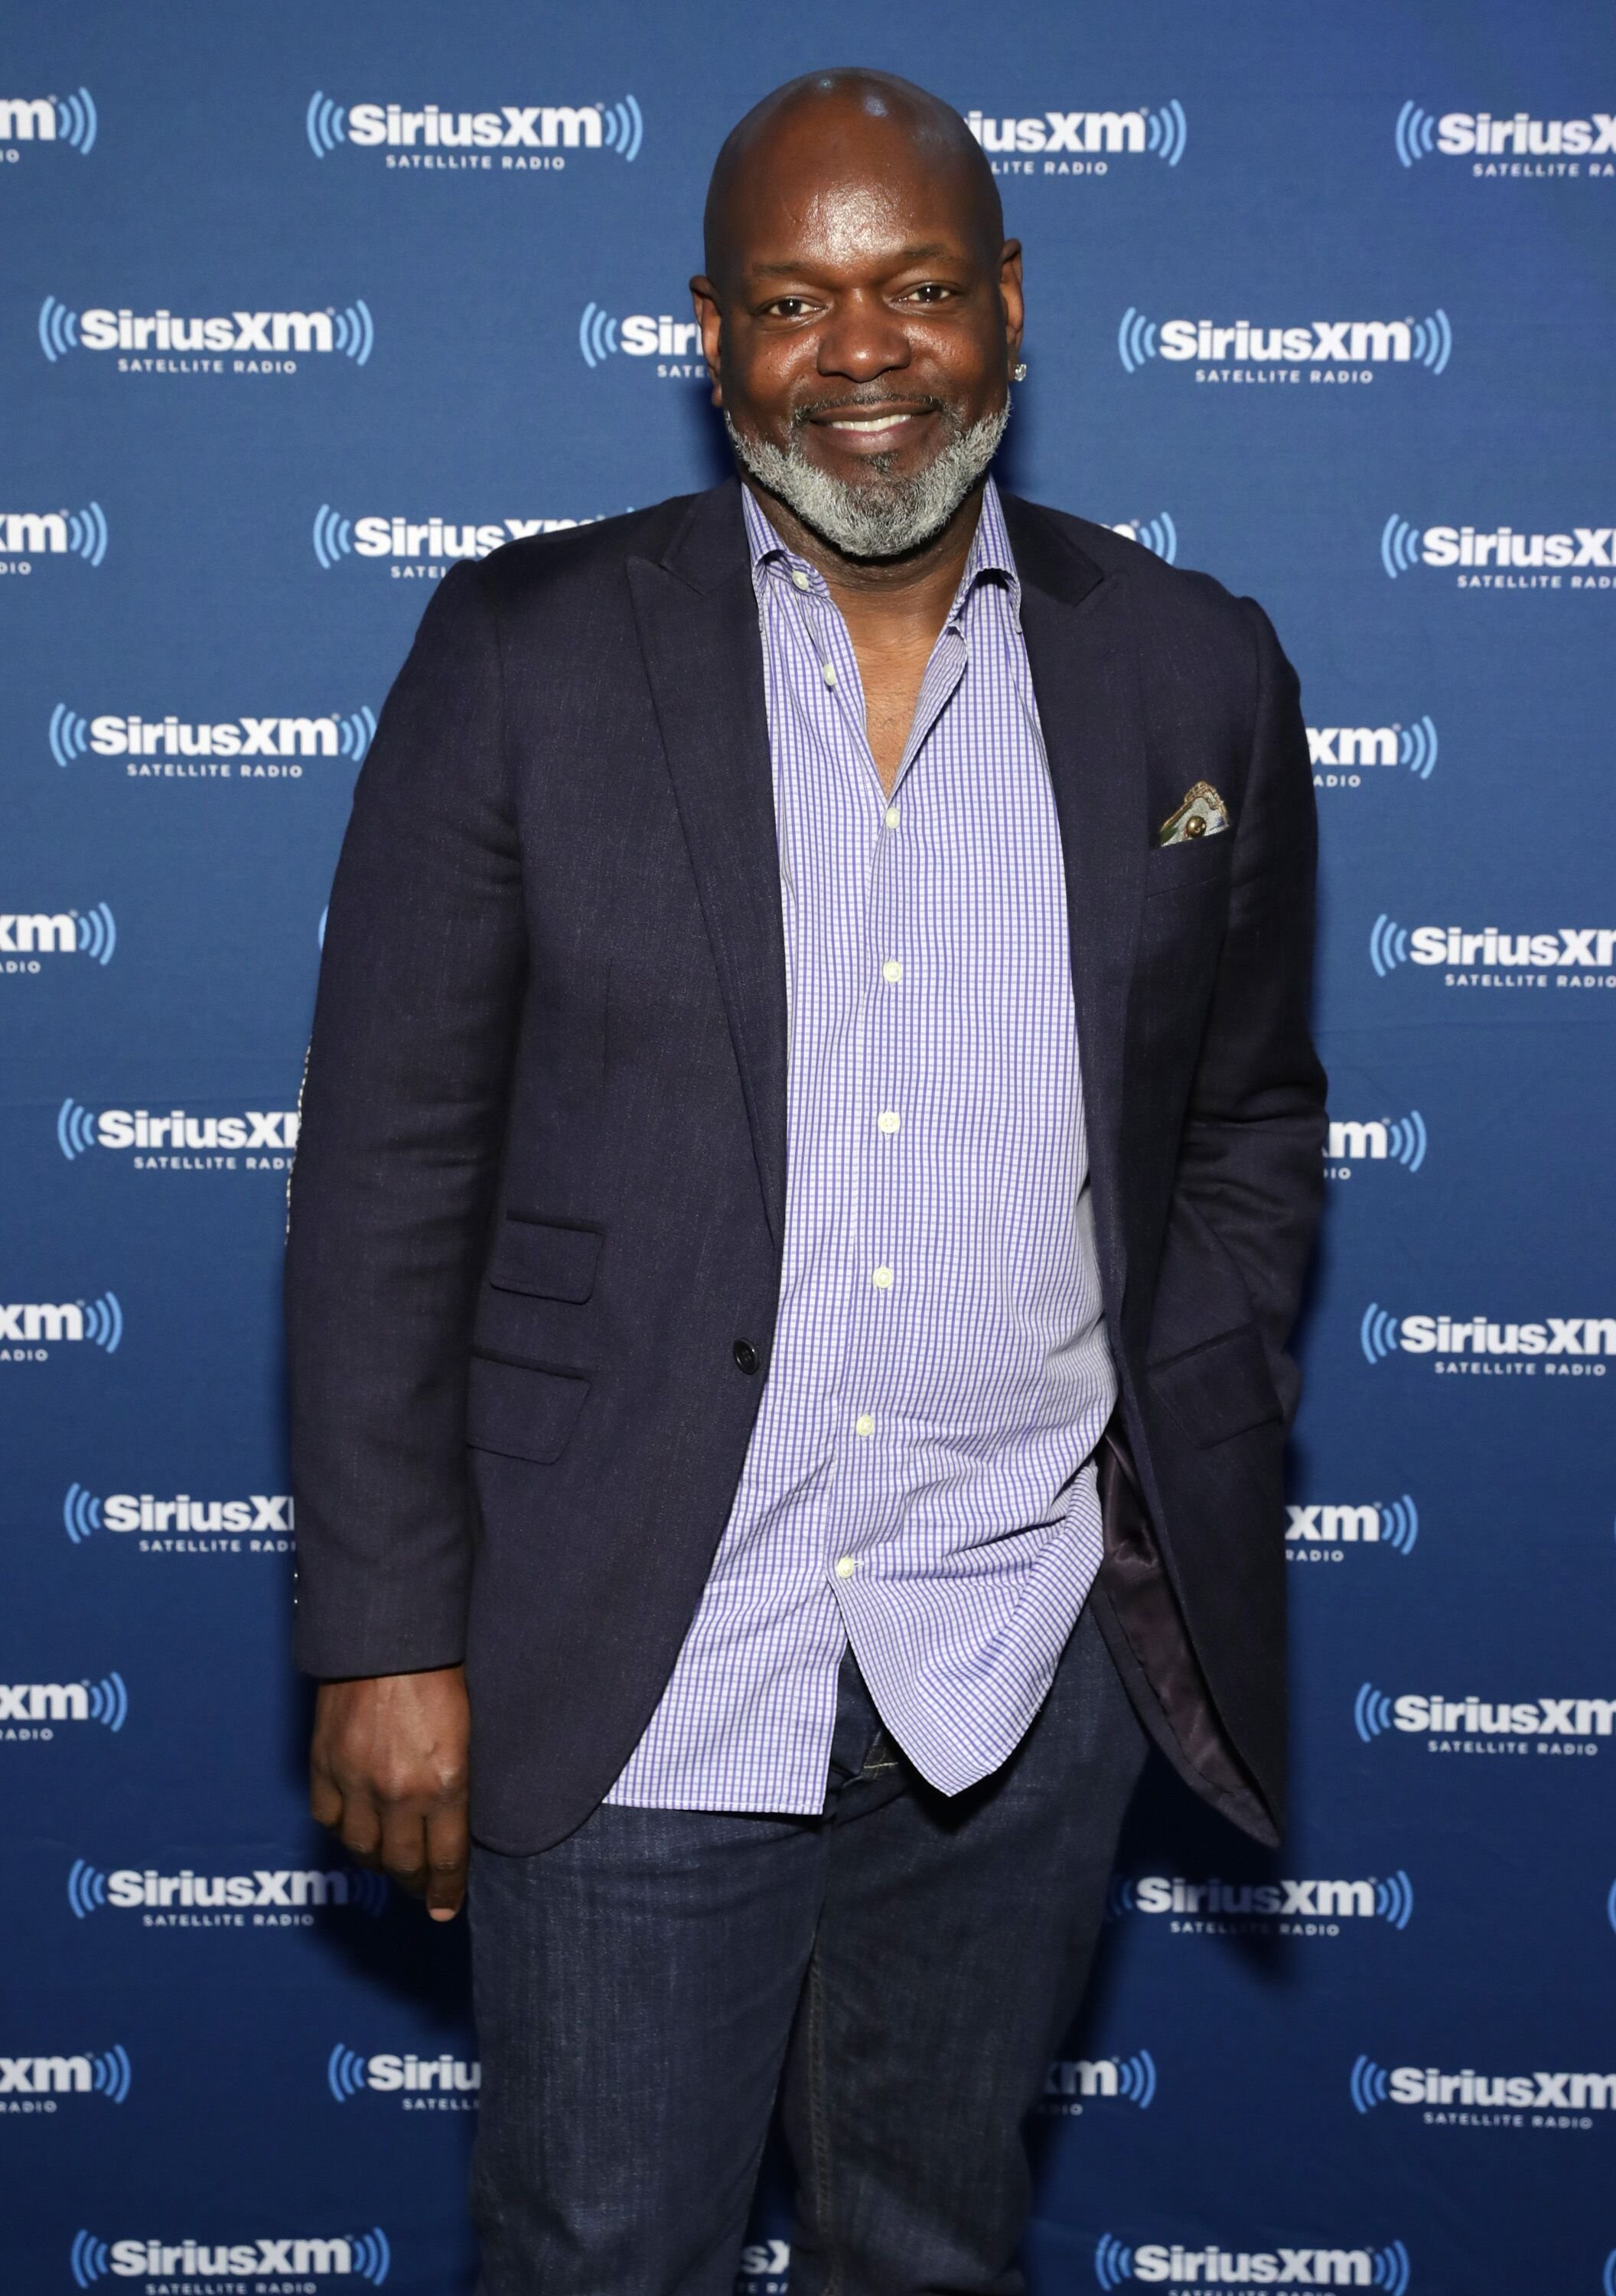 Former NFL player Emmitt Smith visits the SiriusXM set at Super Bowl 51 Radio Row at the George R. Brown Convention Center on February 2, 2017 | Photo: Getty Images